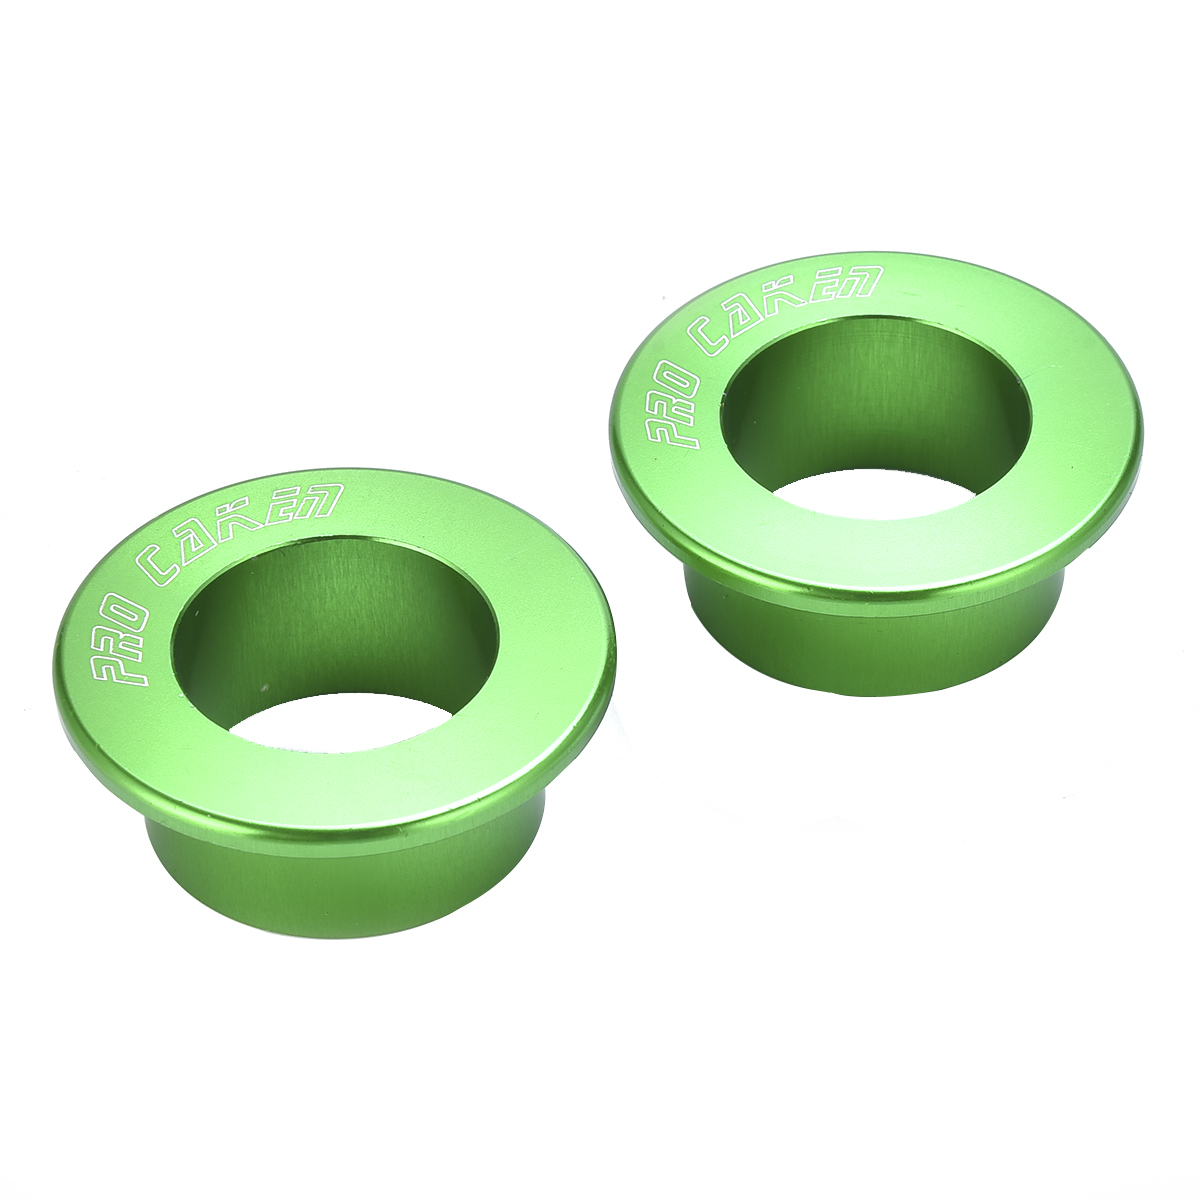 CNC Rear Wheel Spacers for KX125 KX250 KXF250 KXF450 KLX450R